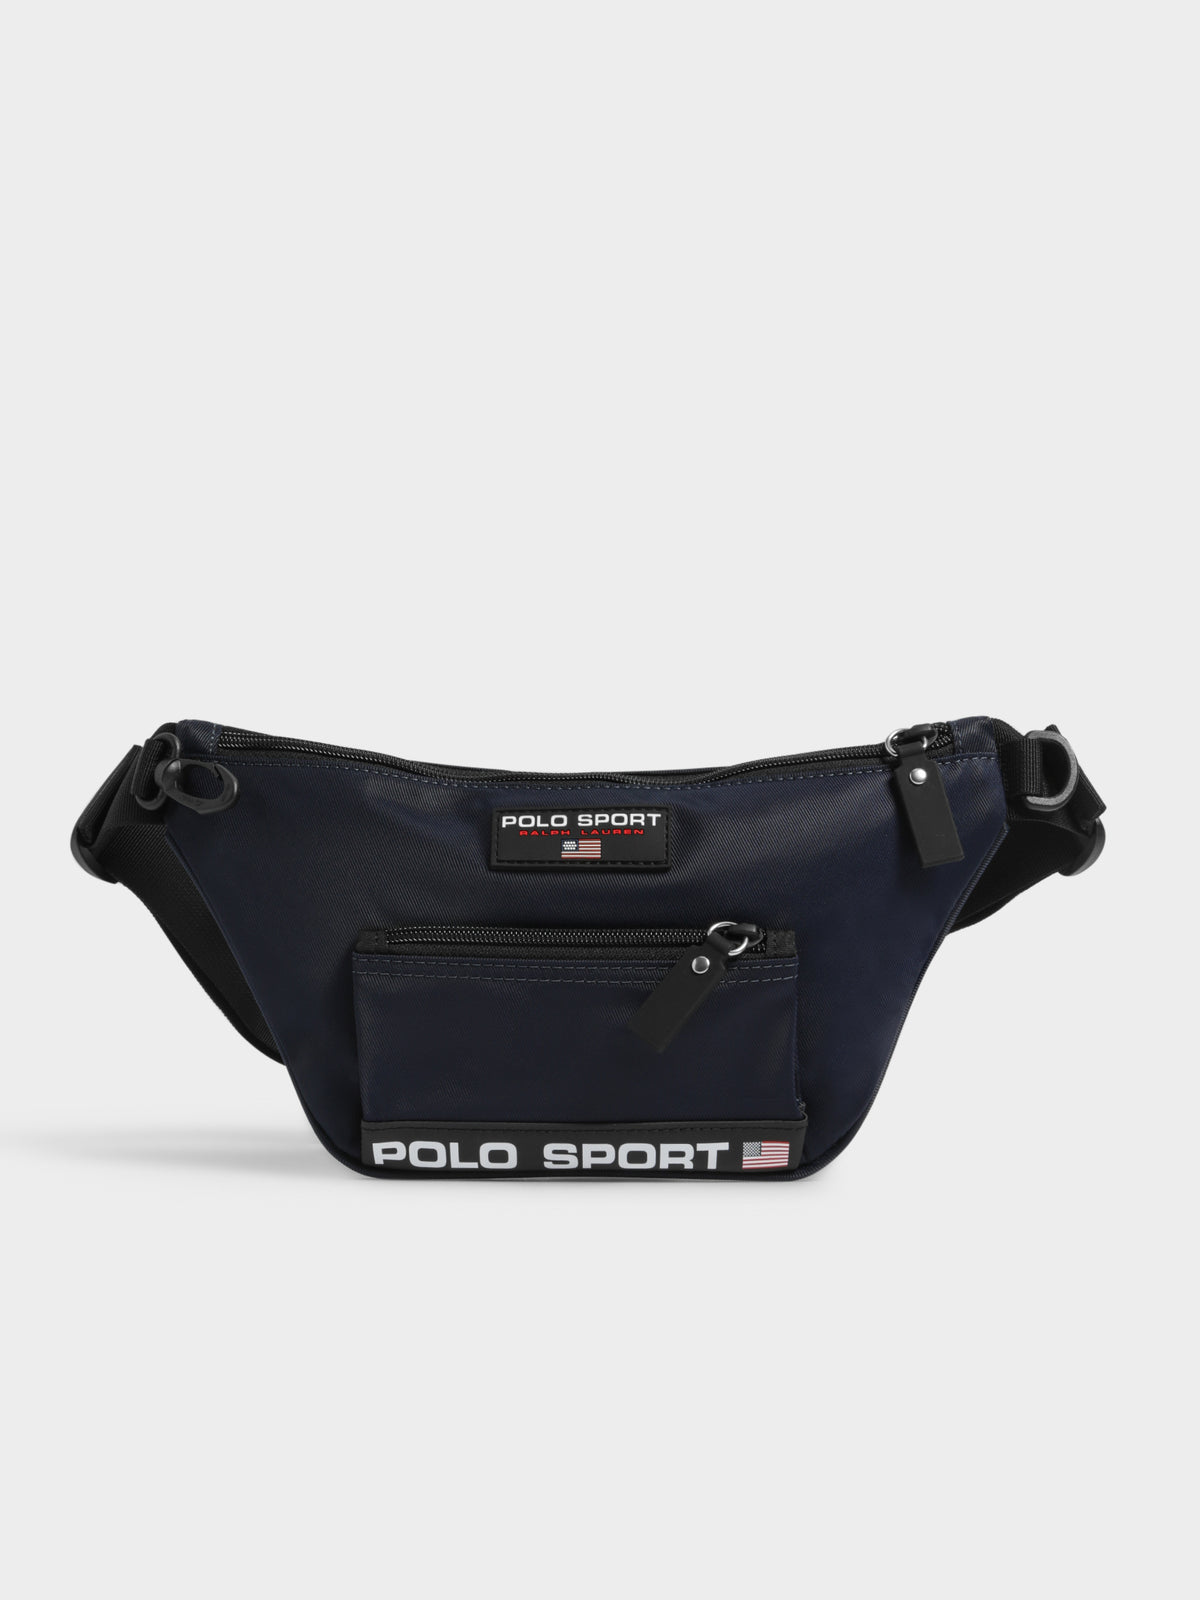 Polo Sport Waist Pack in Navy